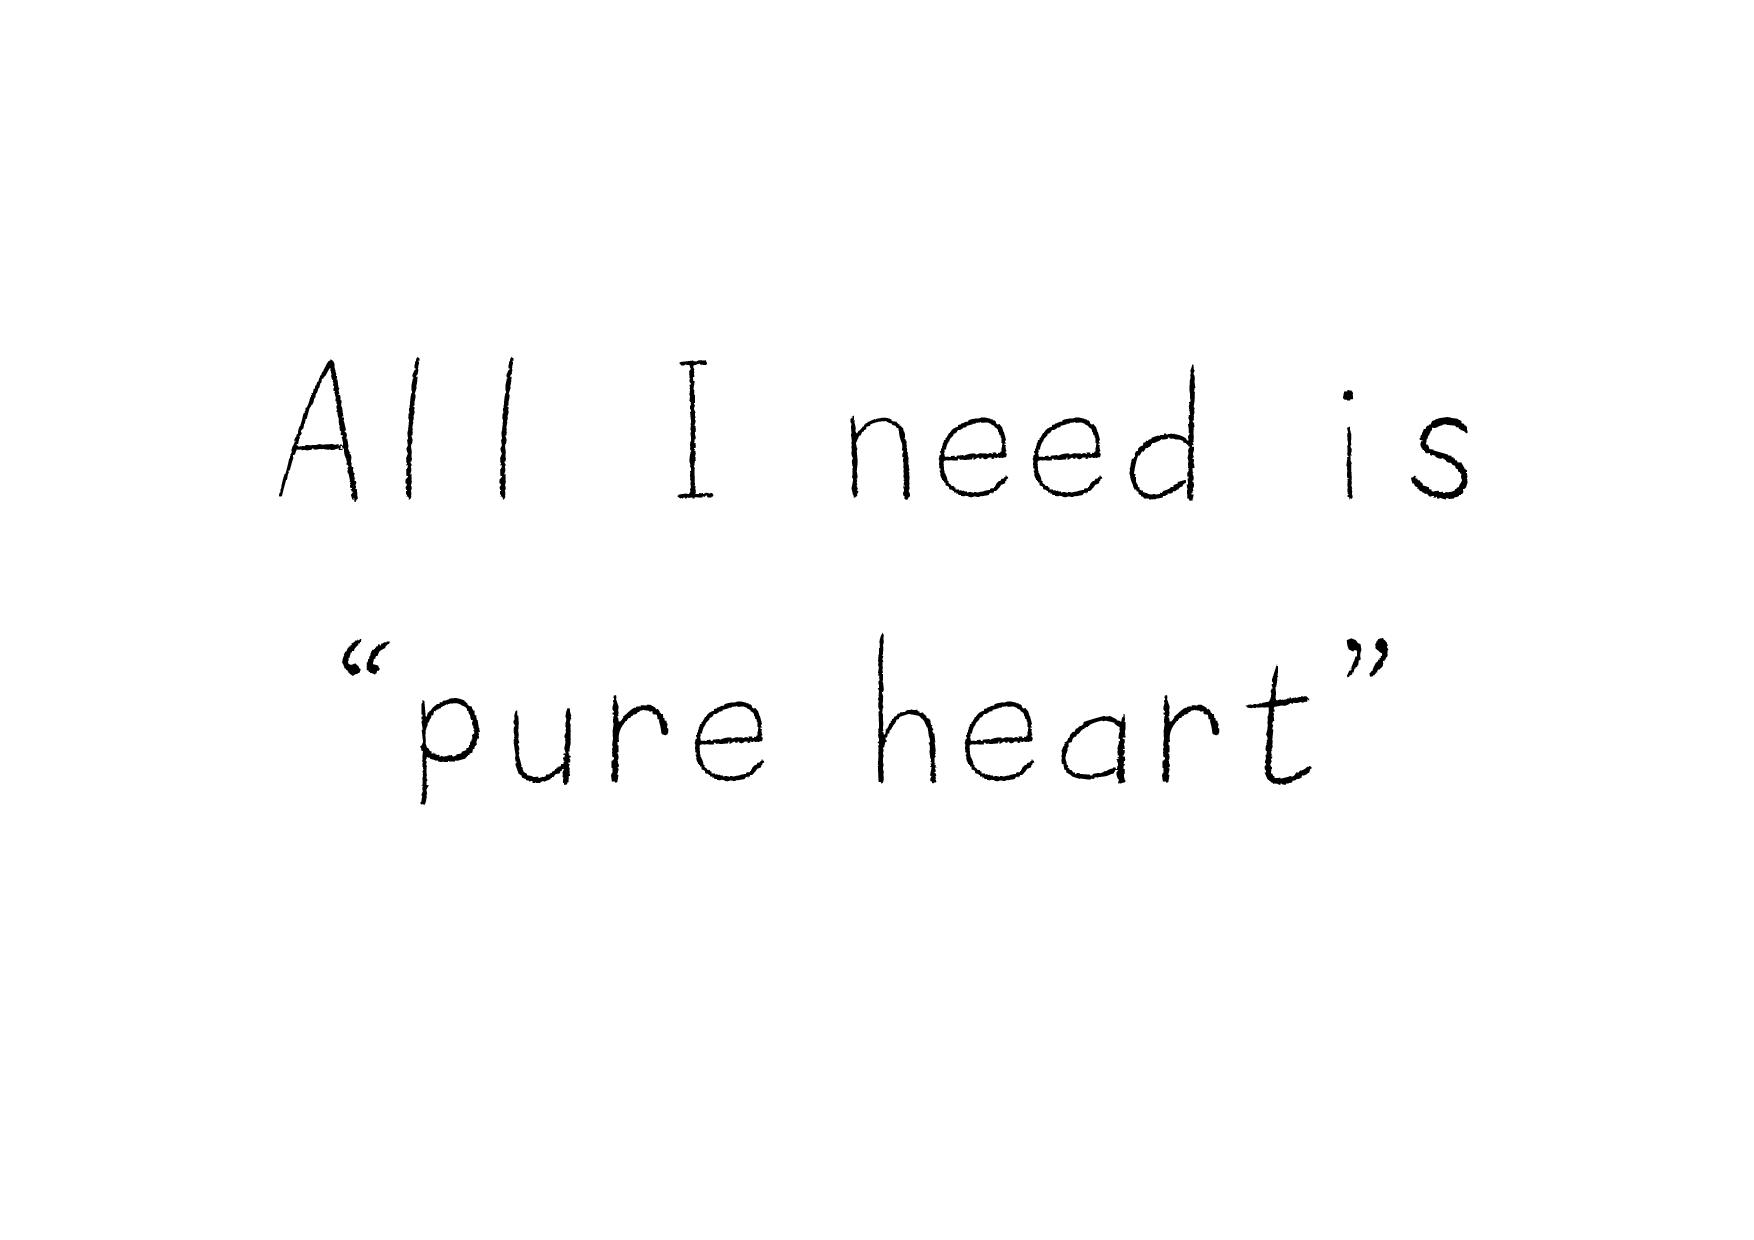 All I need is pure heart